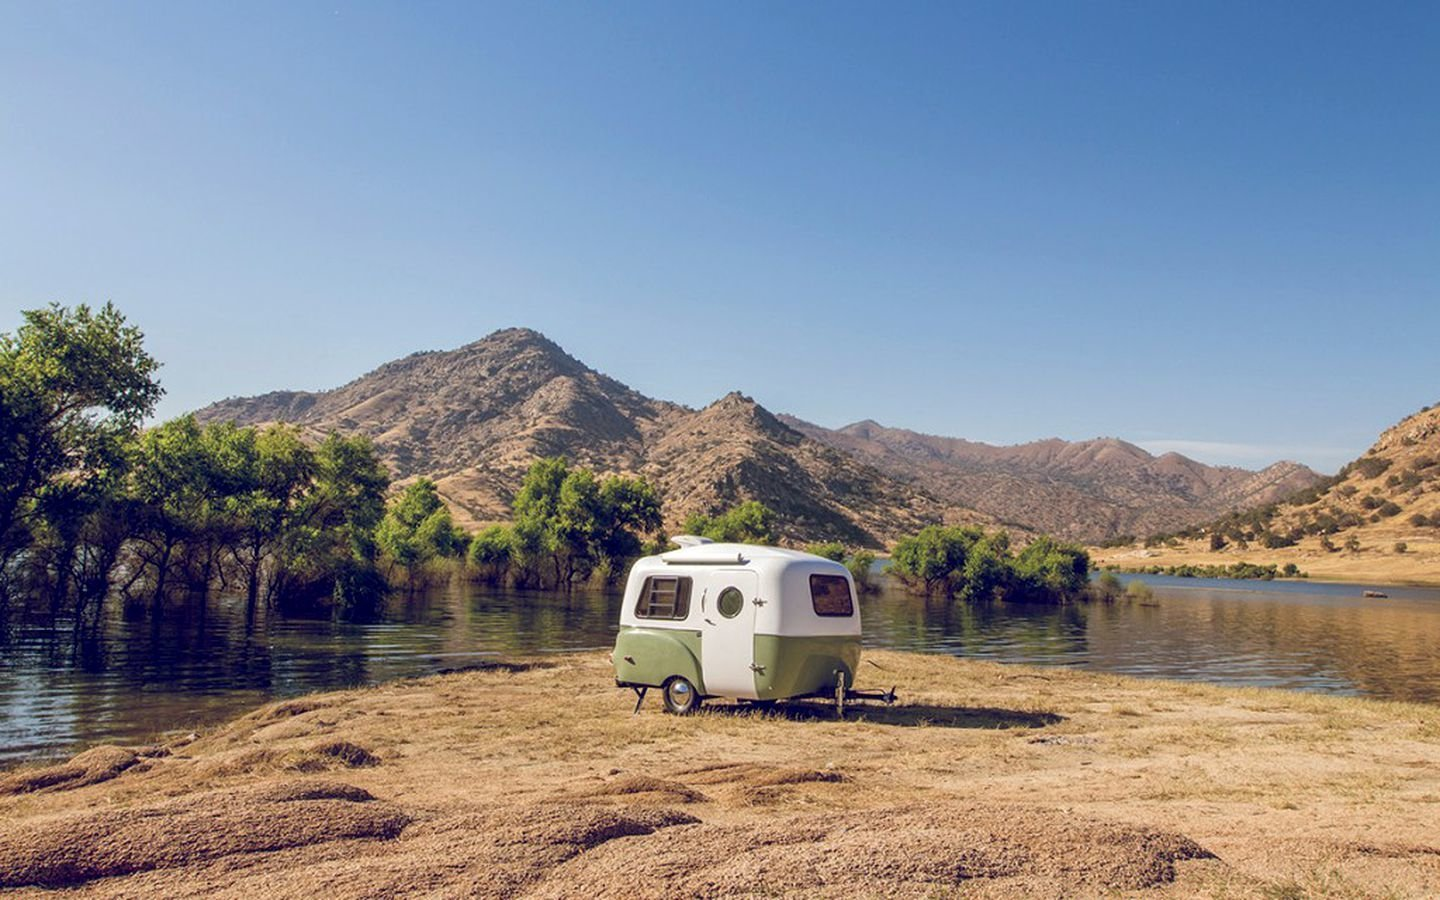 Happier Camper's retro-inspired trailers are ultra-light and can be towed by any vehicle.  Photo 7 of 18 in 17 Kick-Ass Campers and Trailers You Can Rent From $45 a Night